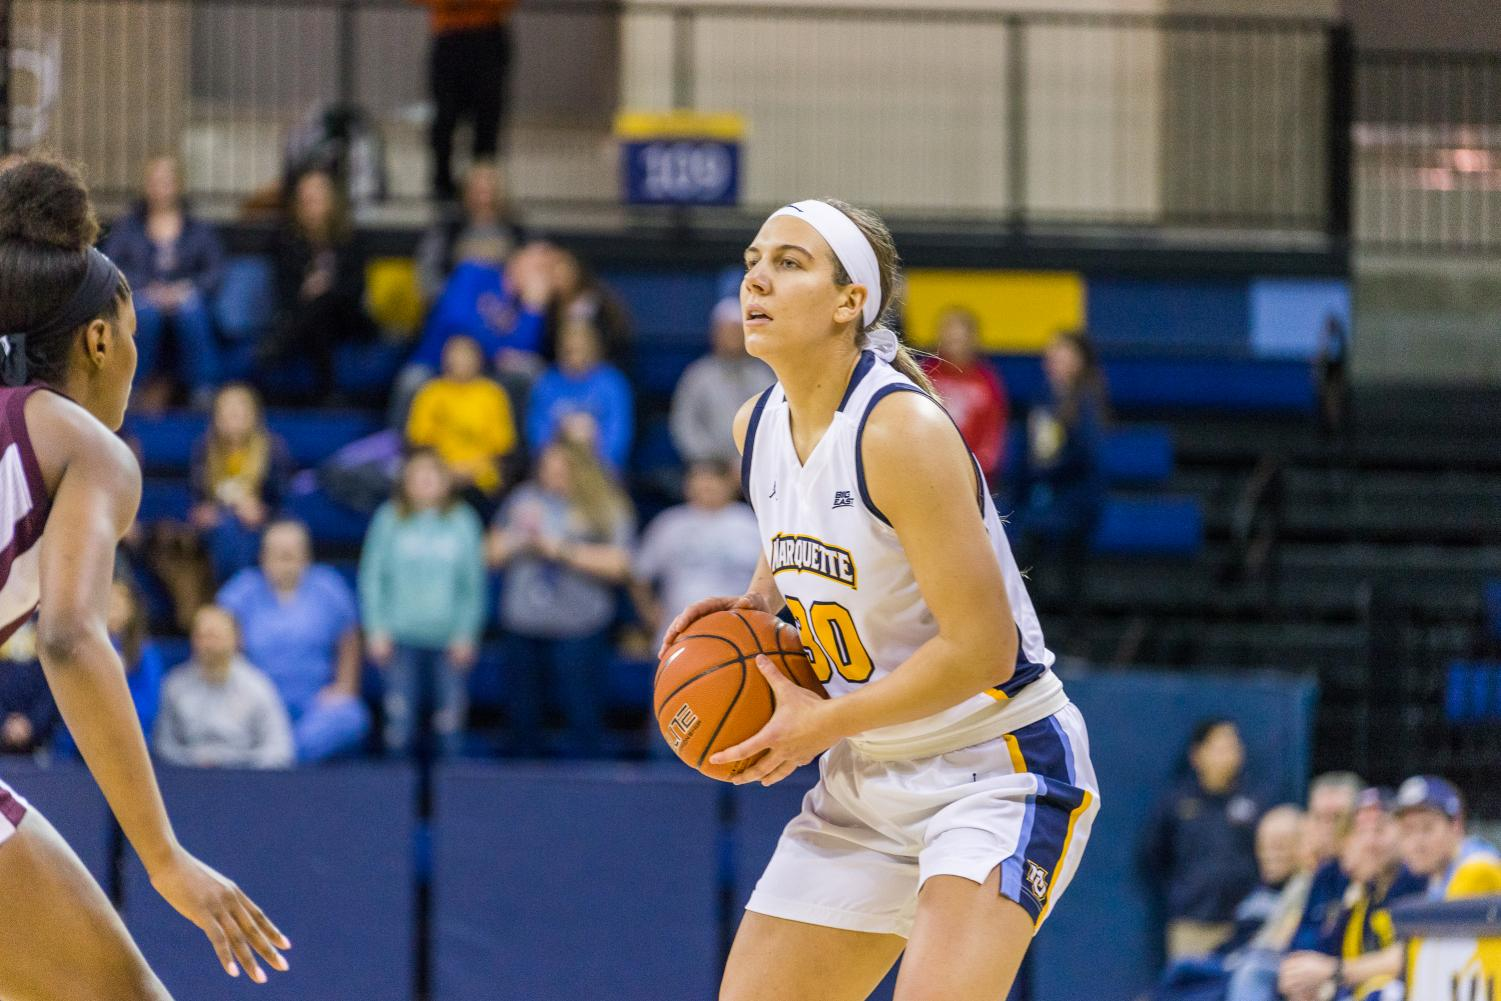 Isabelle Spingola holds onto the ball in MU's Nov. 25 loss to Mississippi State at the Al McGuire Center.